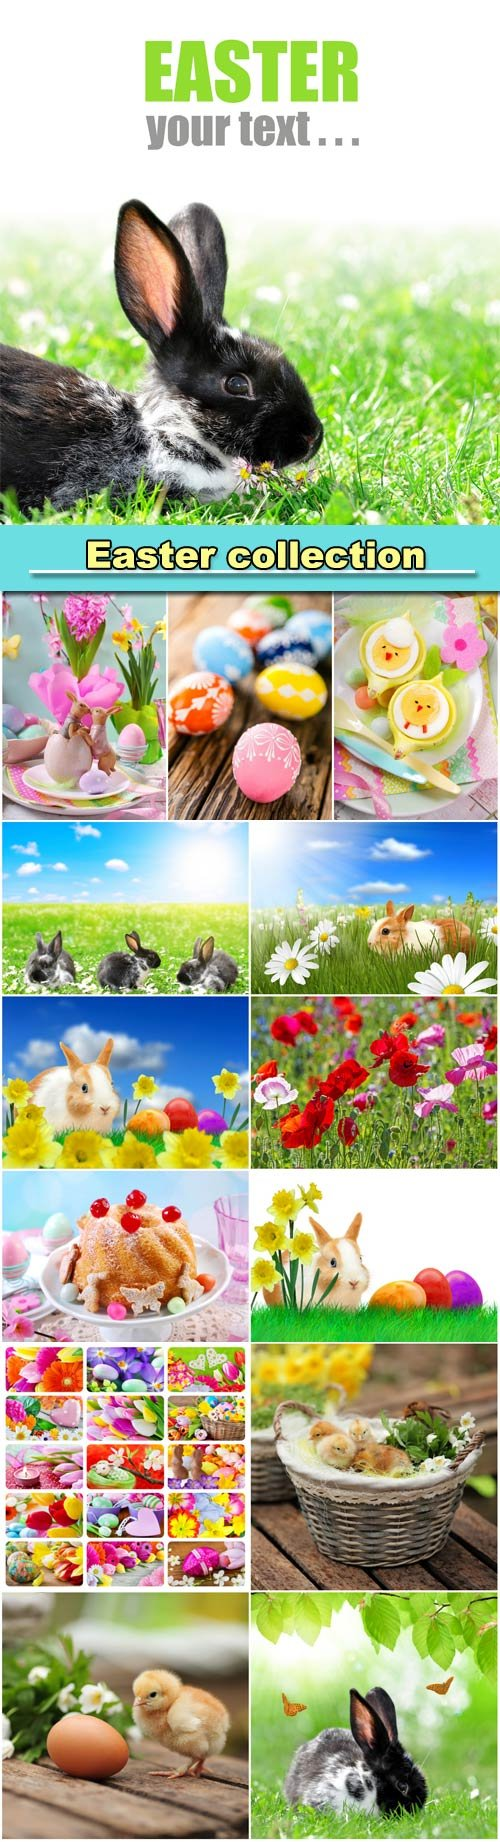 Easter collection, rabbits and chickens, Easter eggs